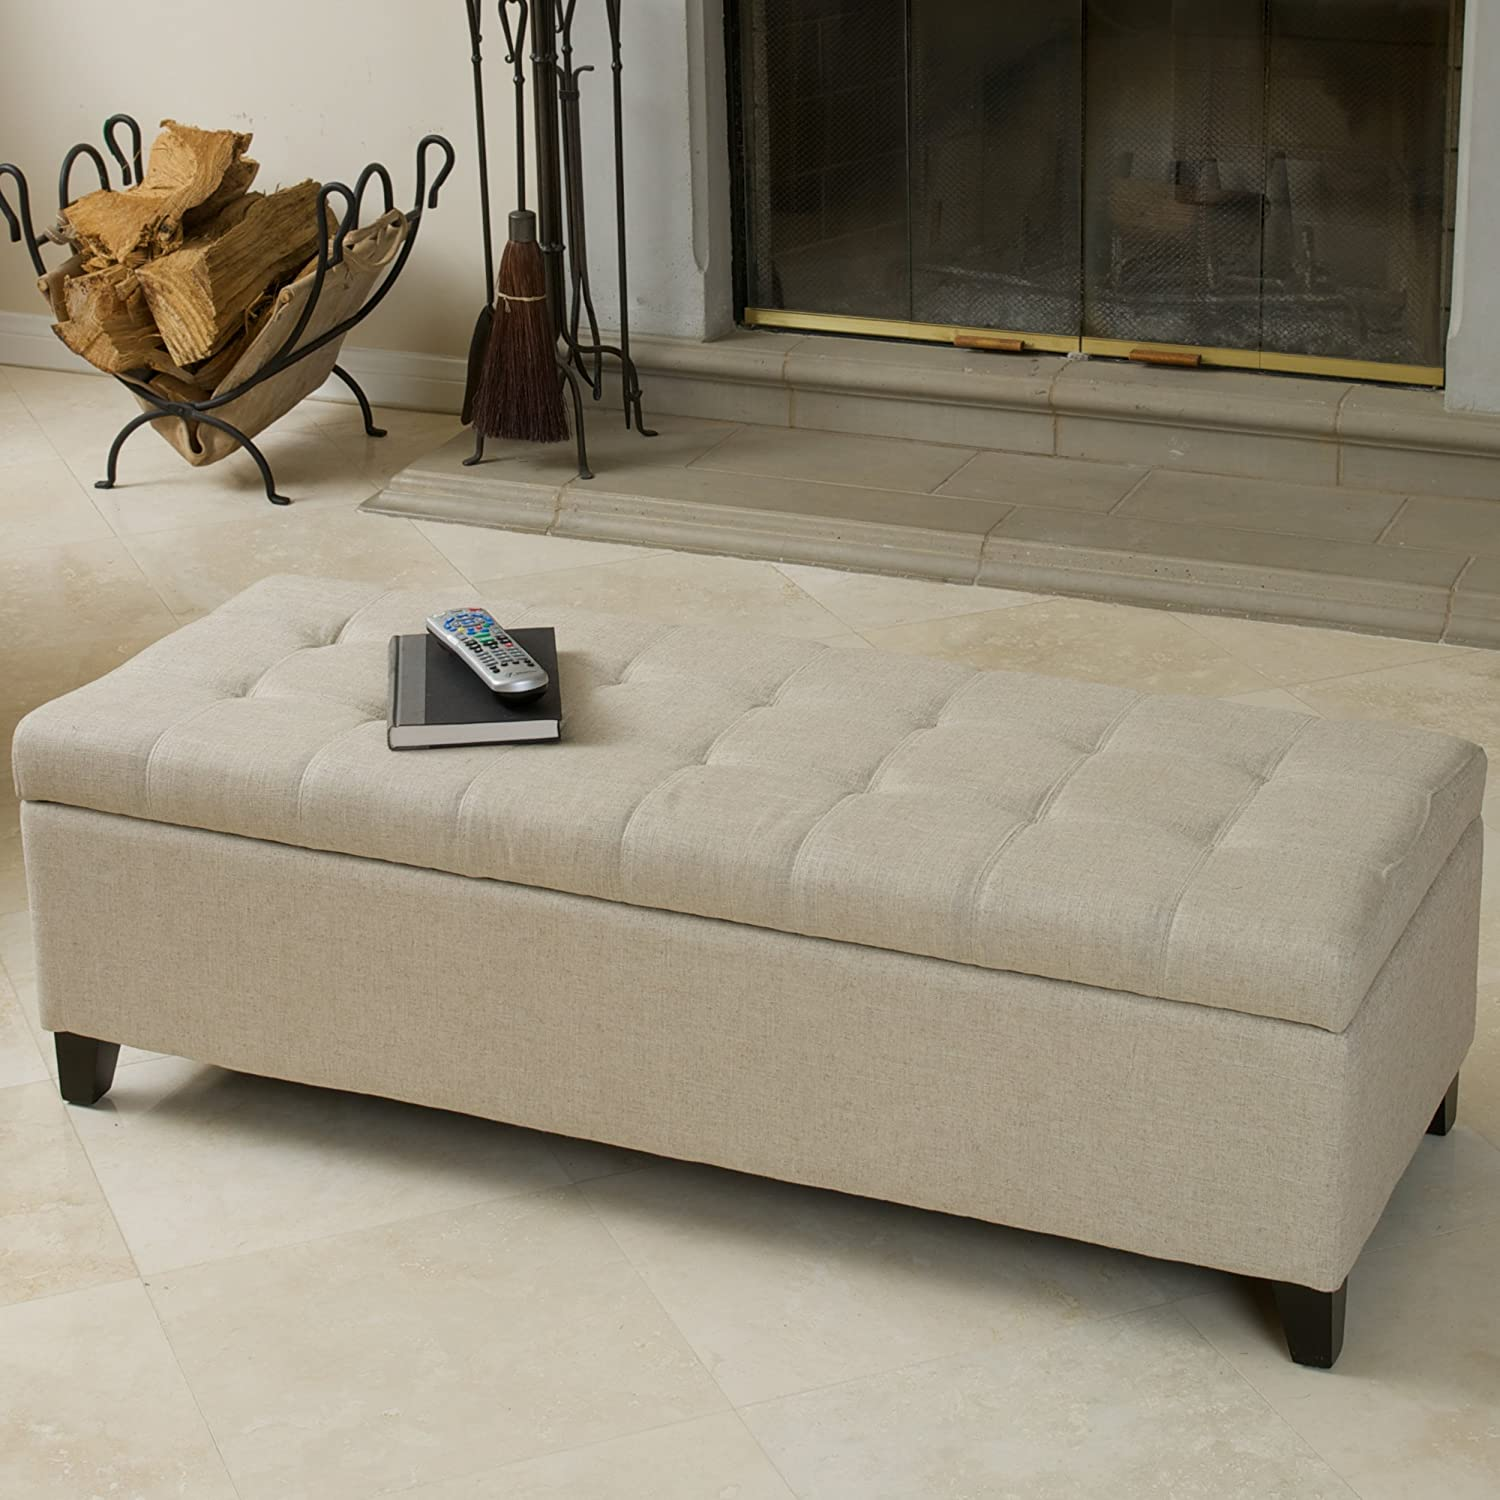 Superior Amazon.com: Best Selling Mission Tufted Fabric Storage Ottoman Bench,  Beige: Kitchen U0026 Dining